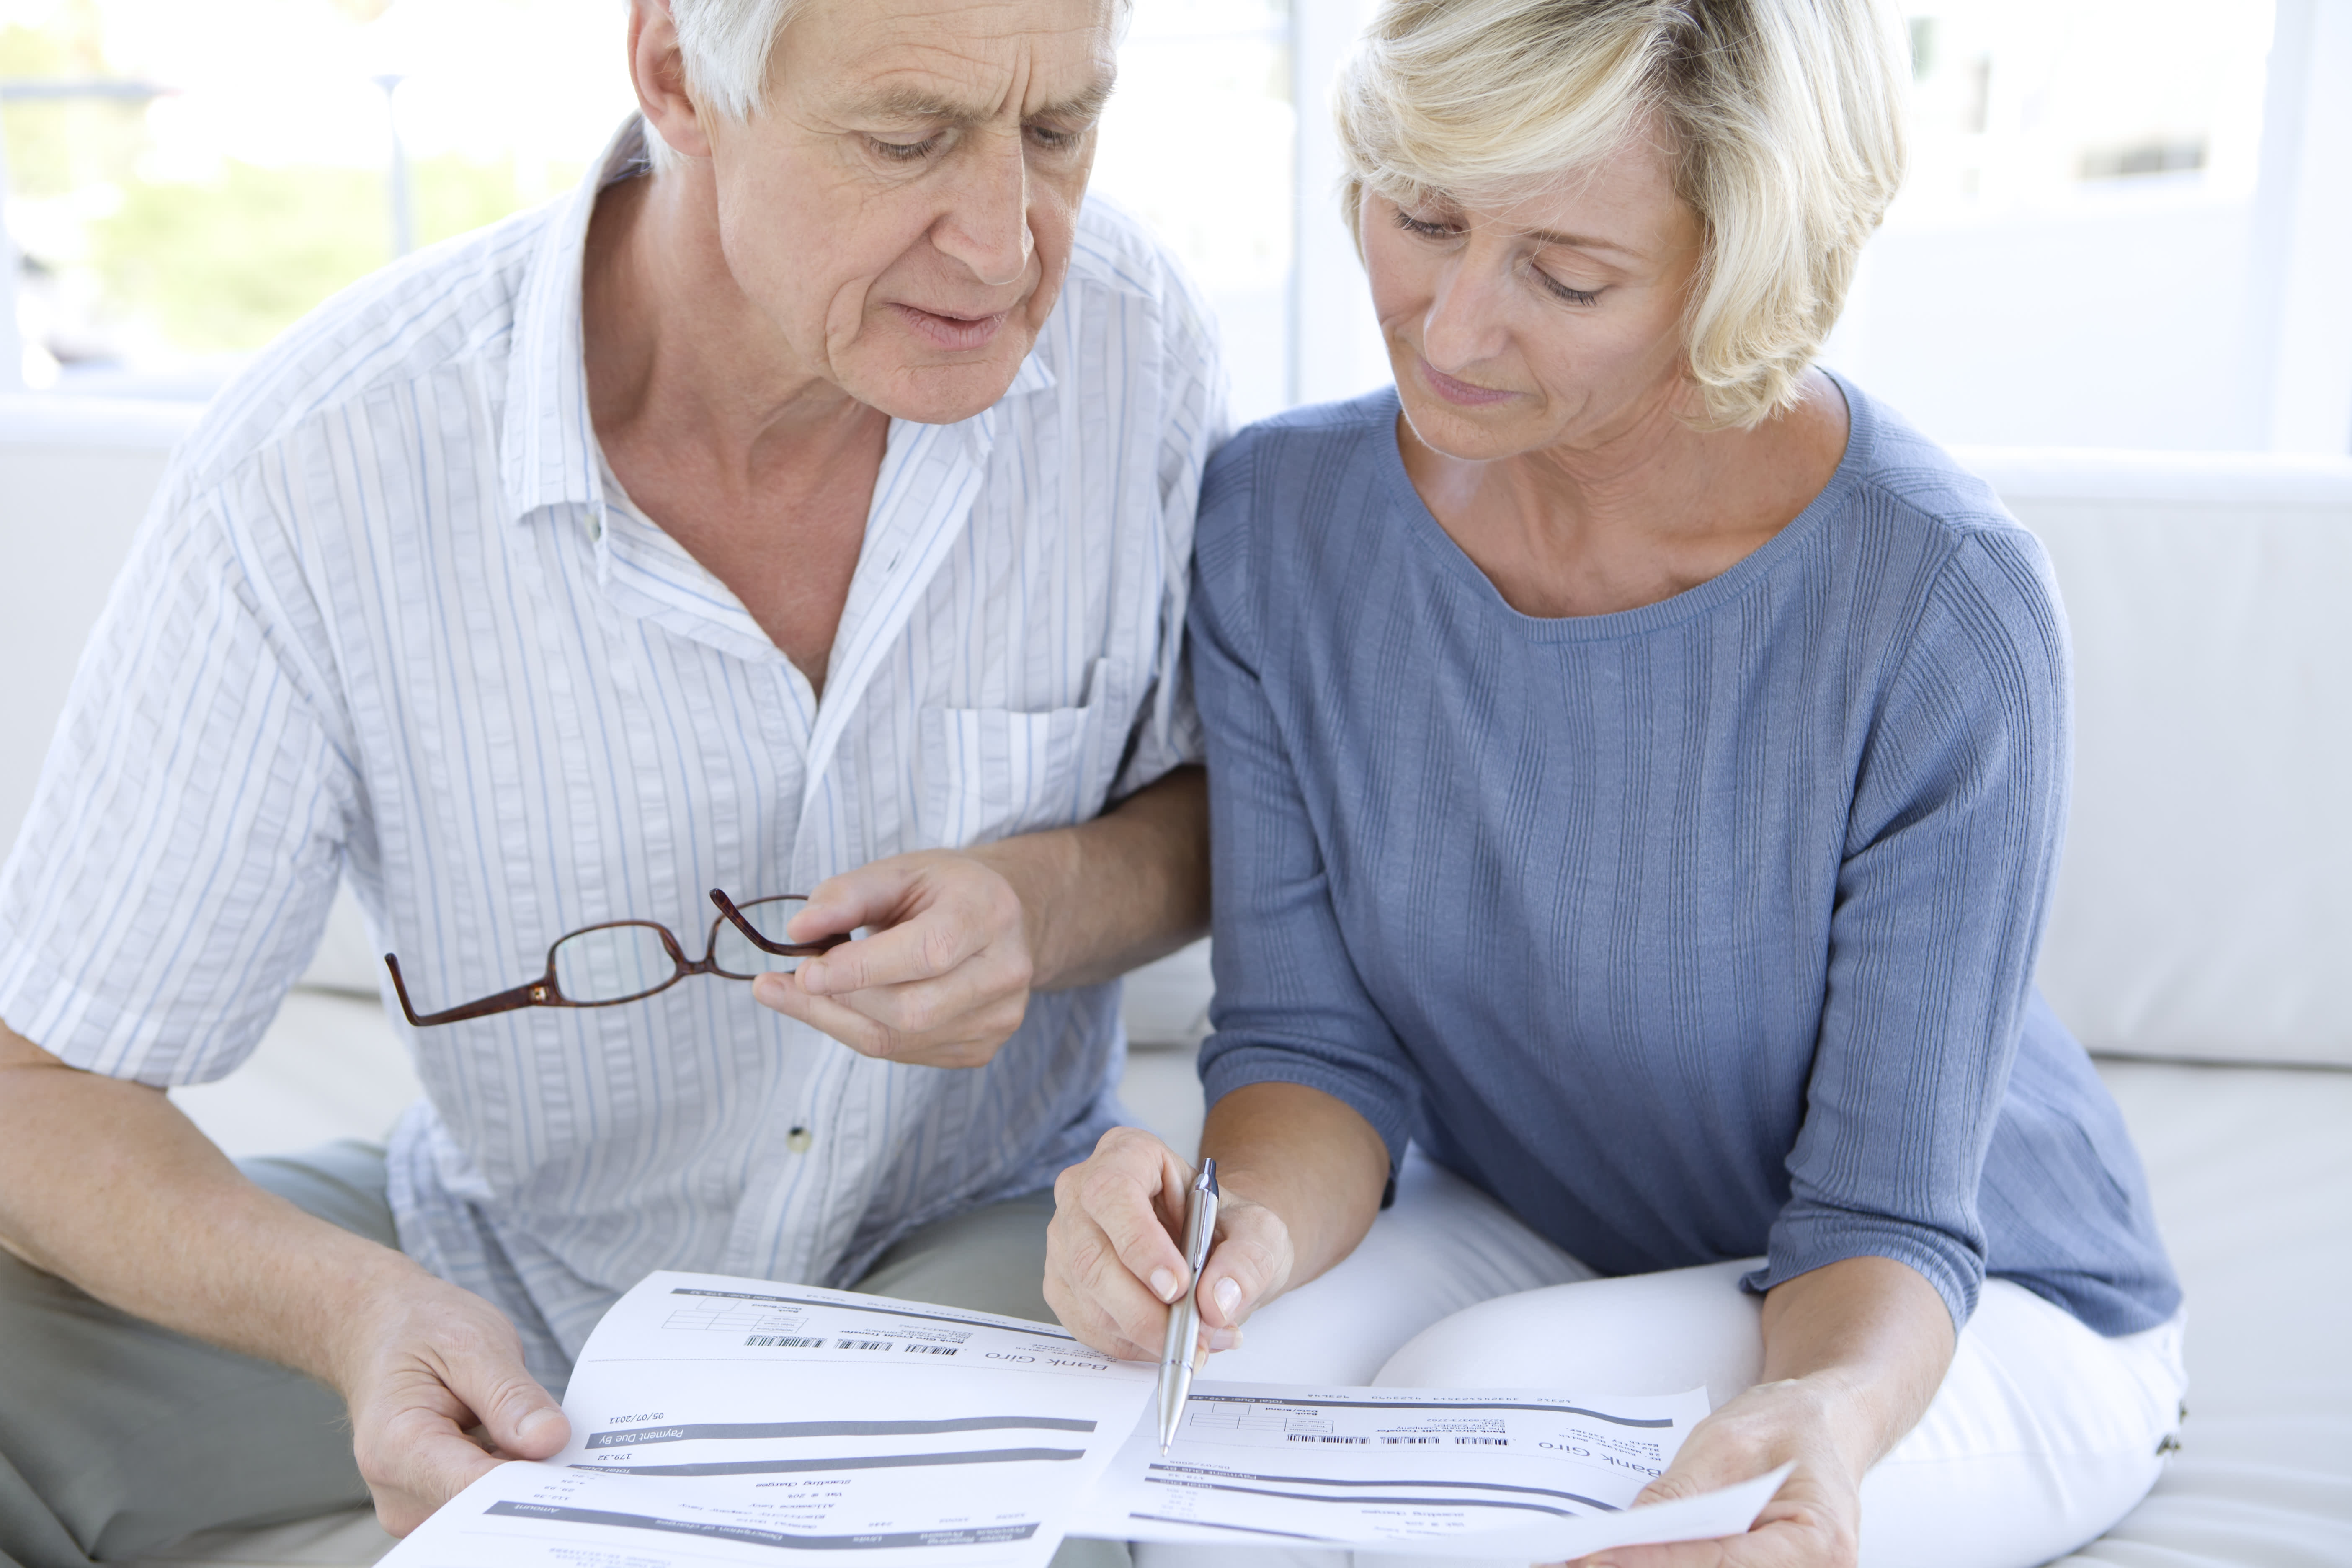 Deciding when to claim Social Security based on break-even calculations? Be careful